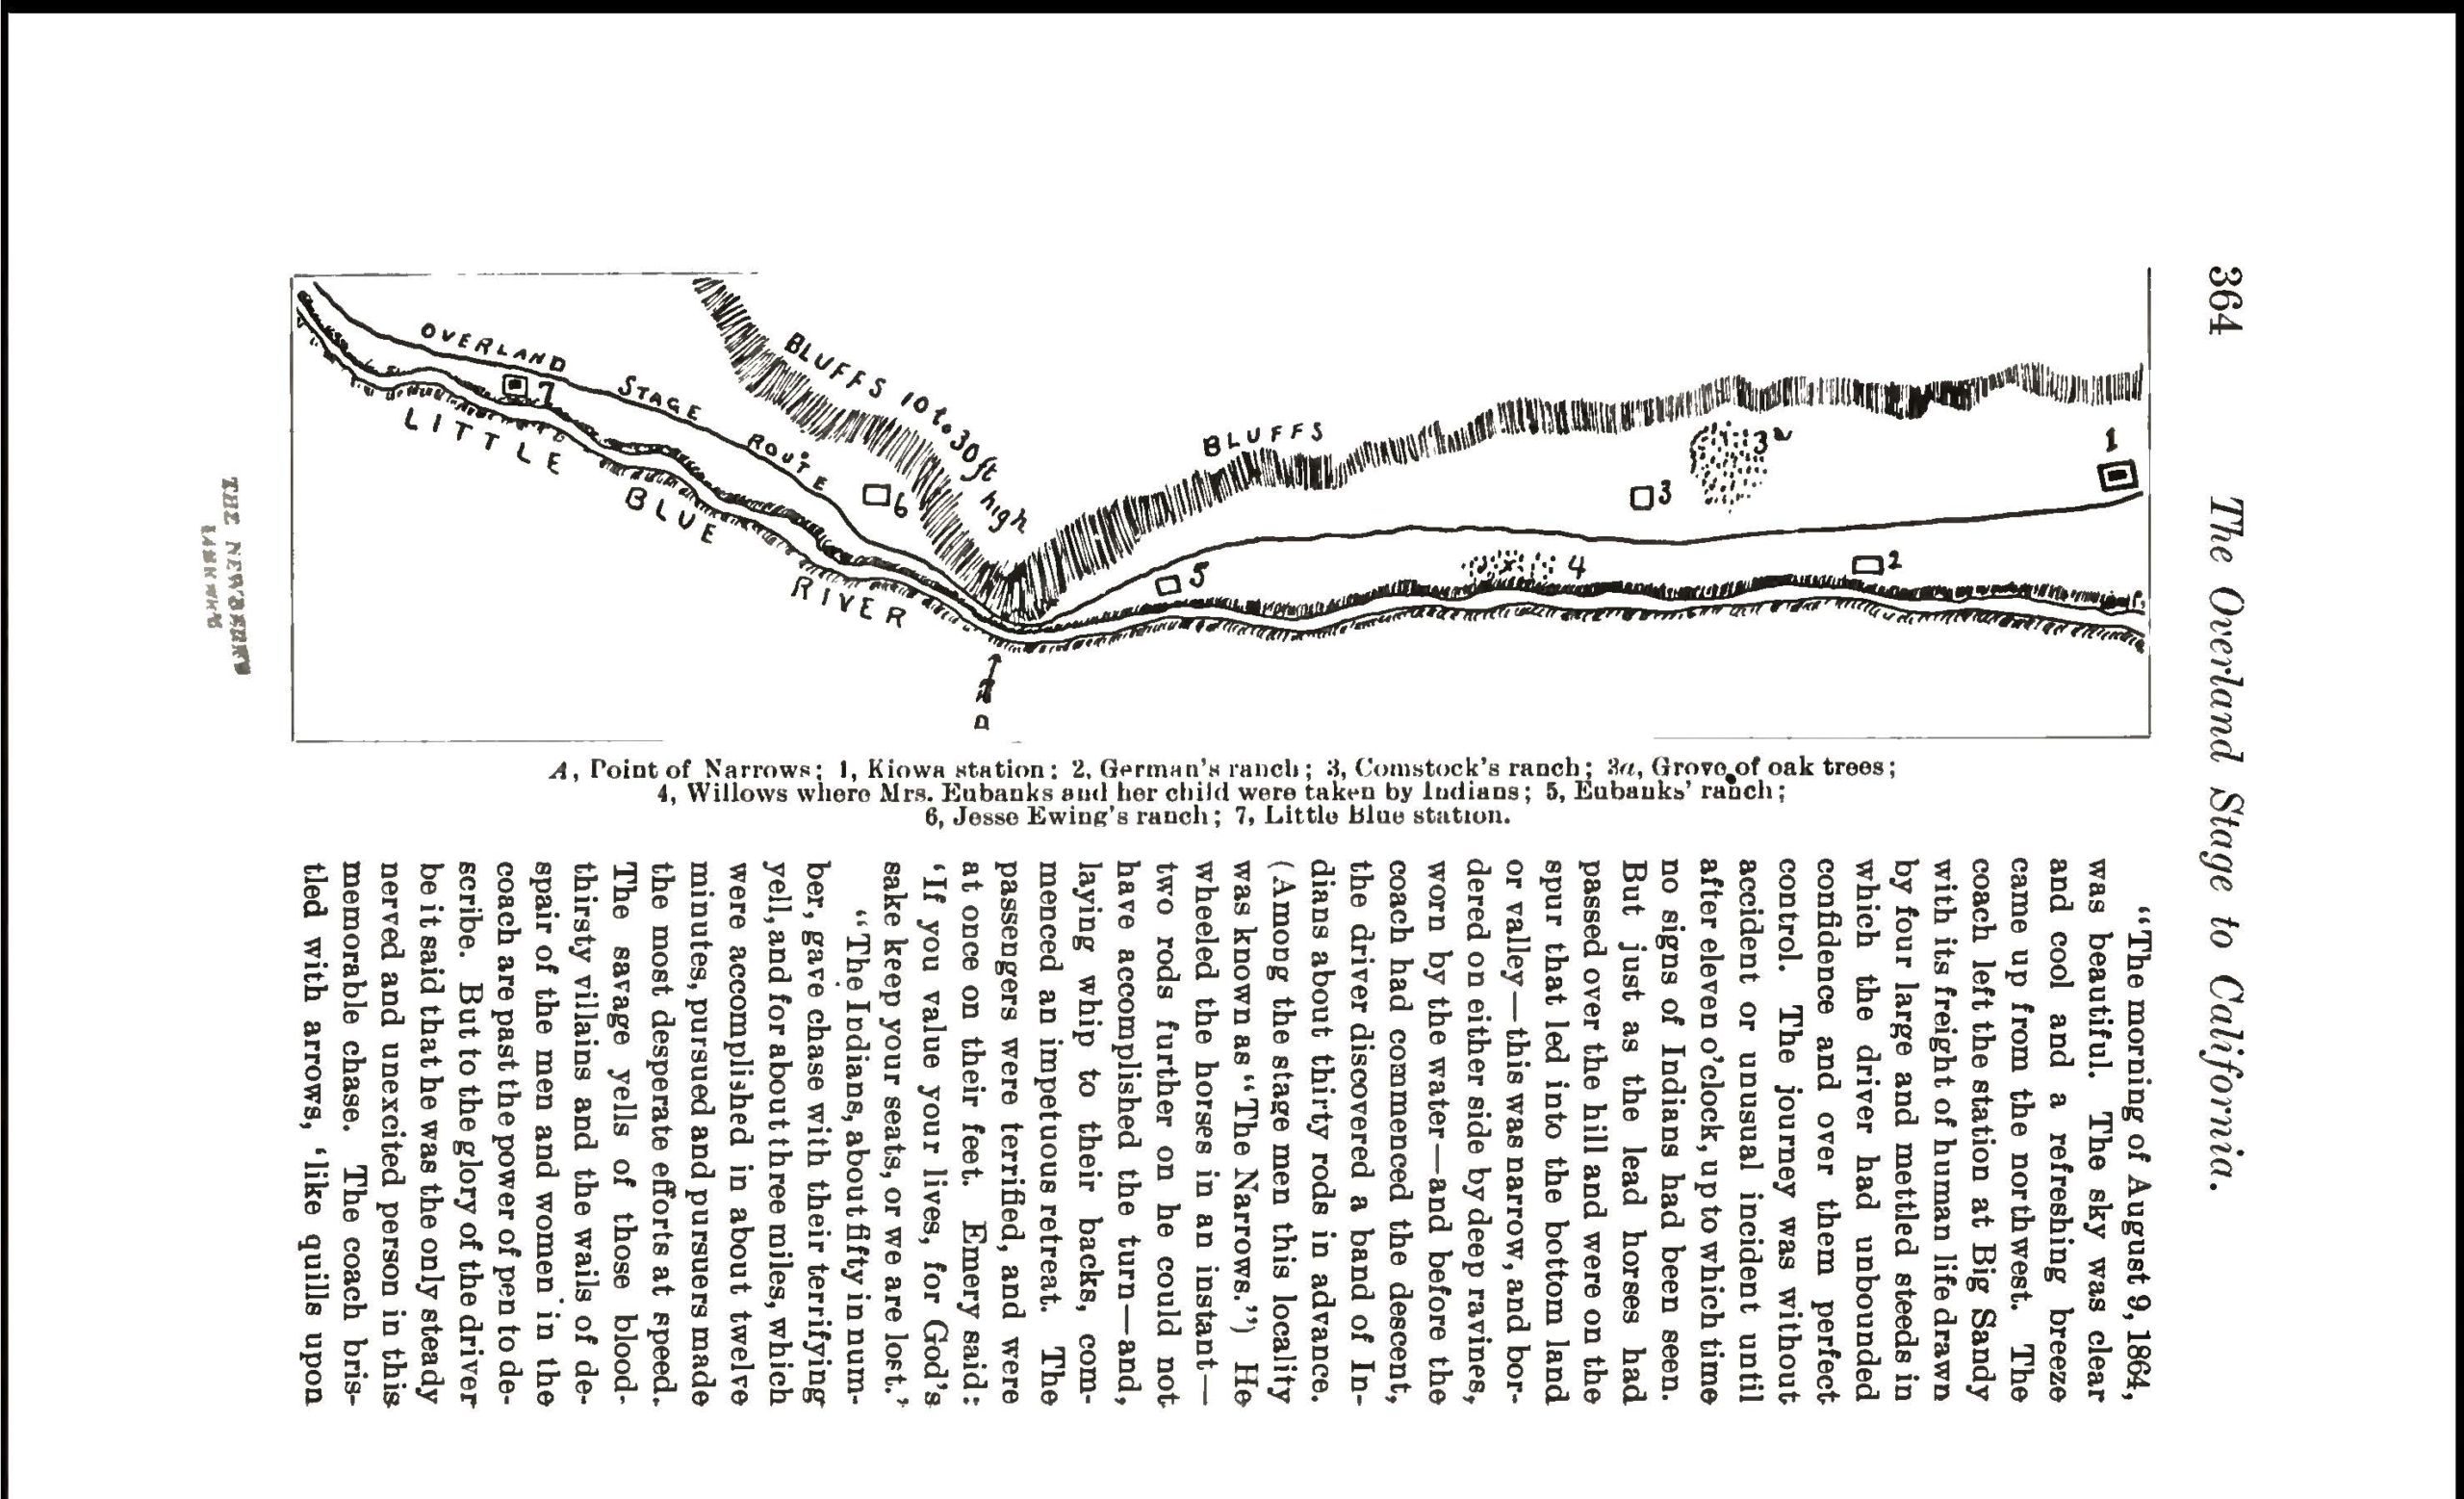 Map of The Narrows